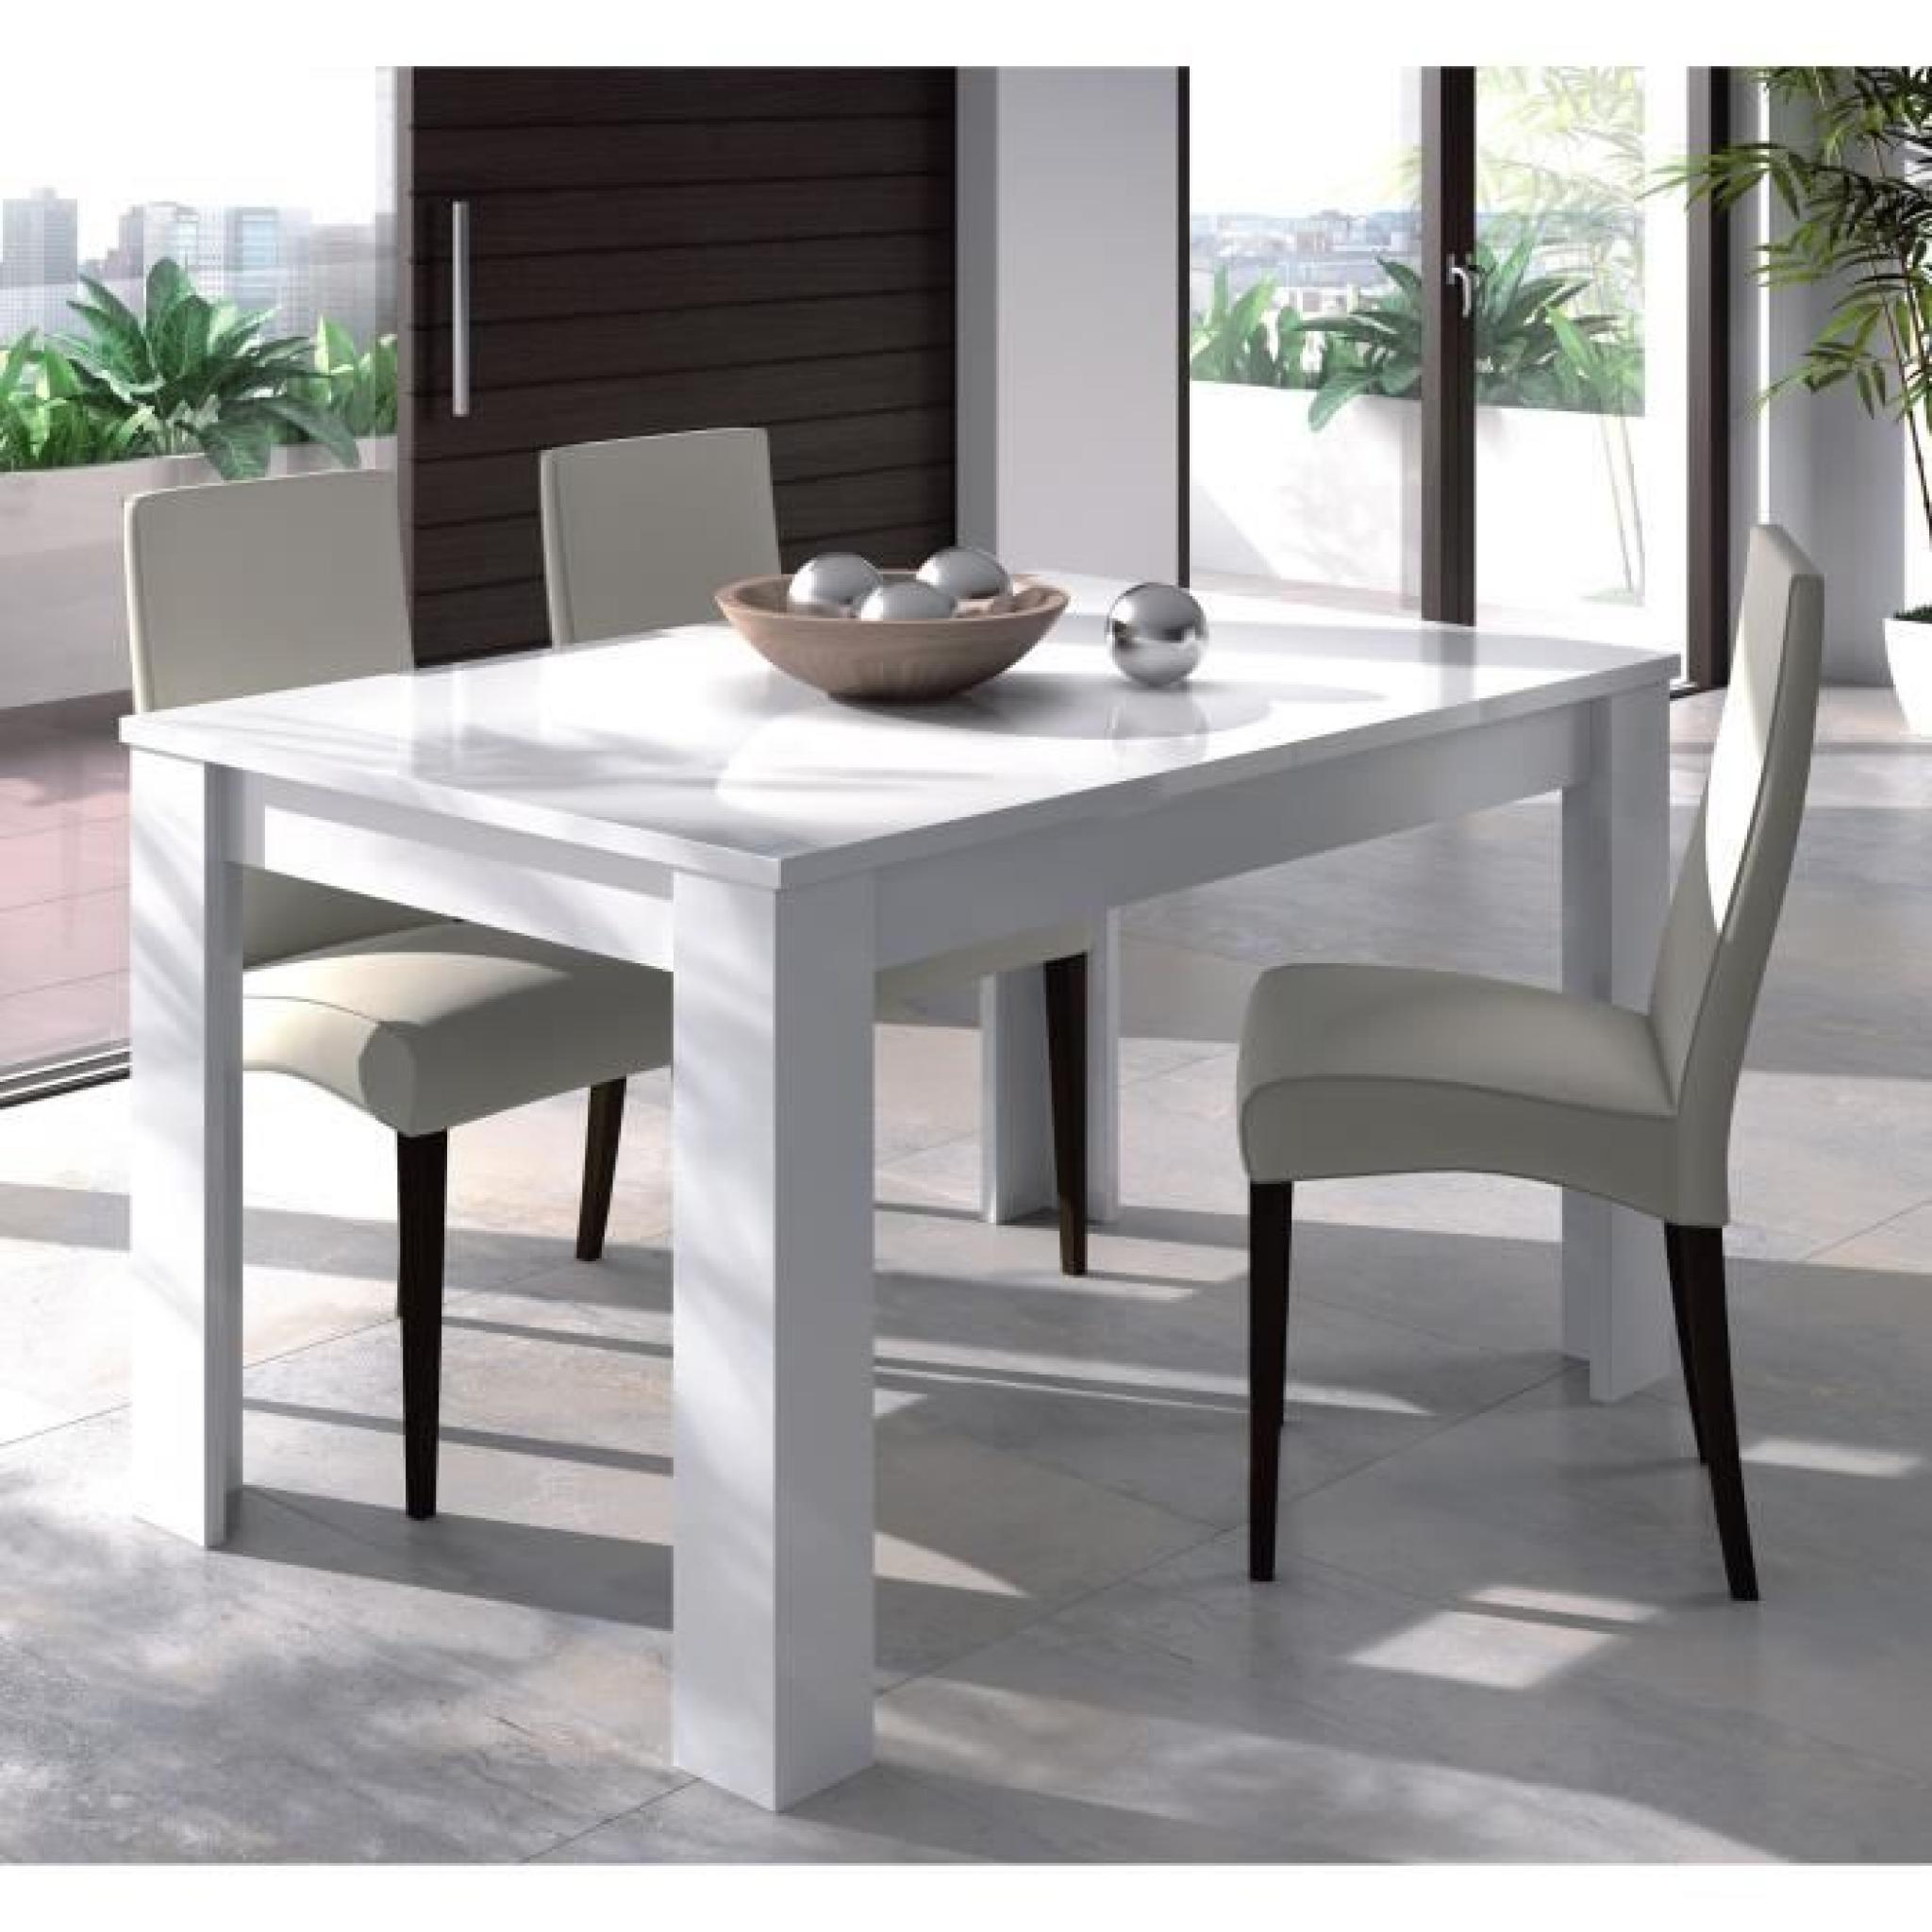 140190cm Brillant Blanc Extensible Kendra Table pGqUSVMz